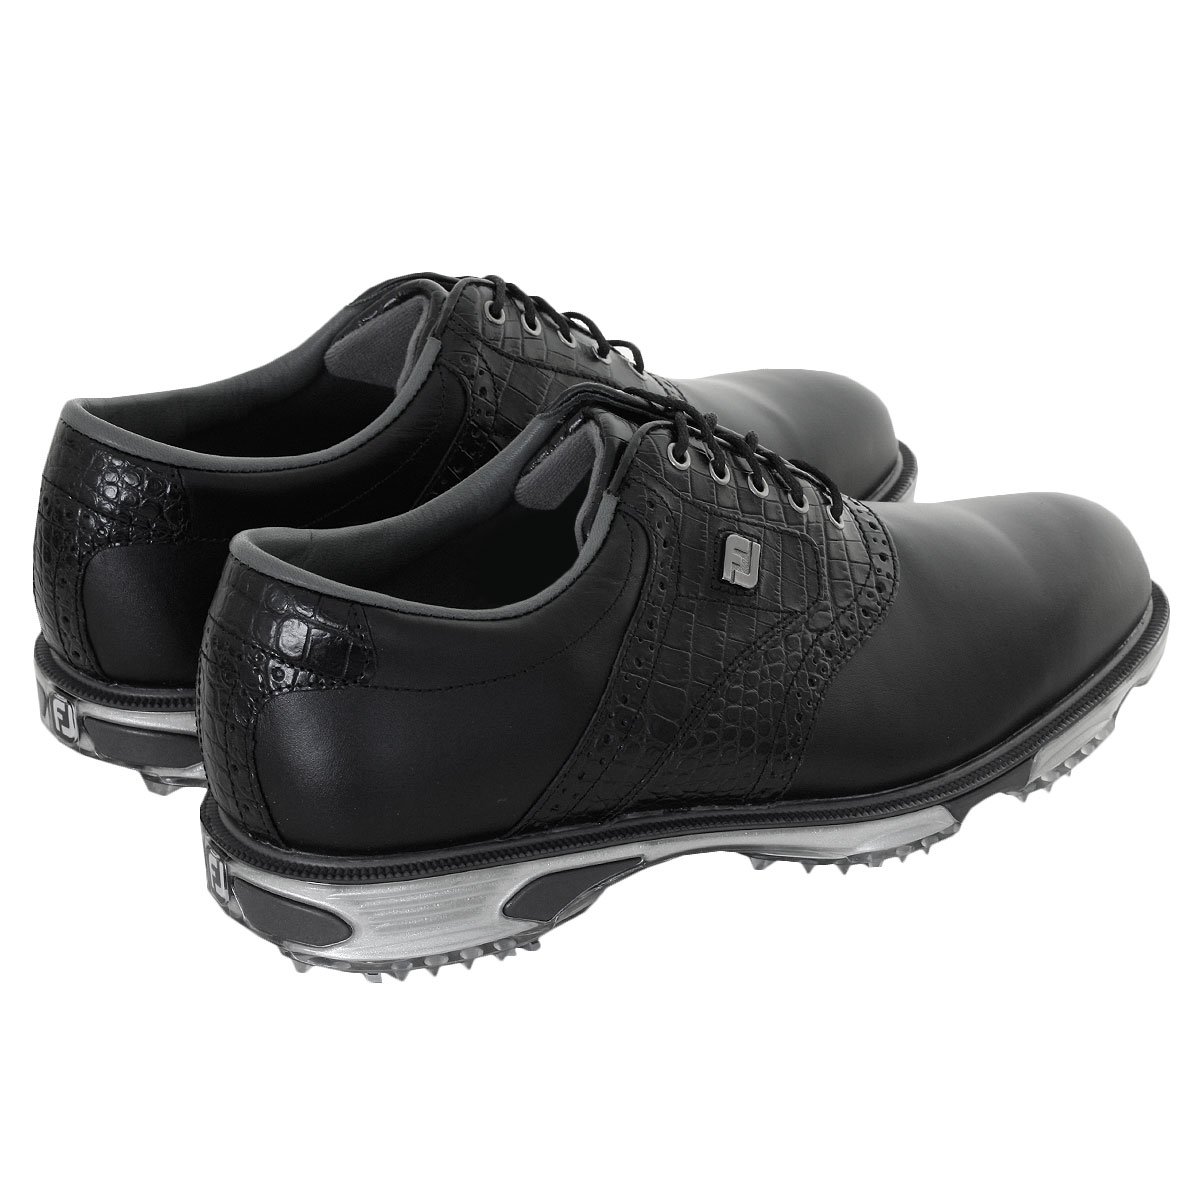 Footjoy-Mens-DryJoys-Tour-Golf-Waterproof-Spiked-Golf-Shoes-53-OFF-RRP thumbnail 7